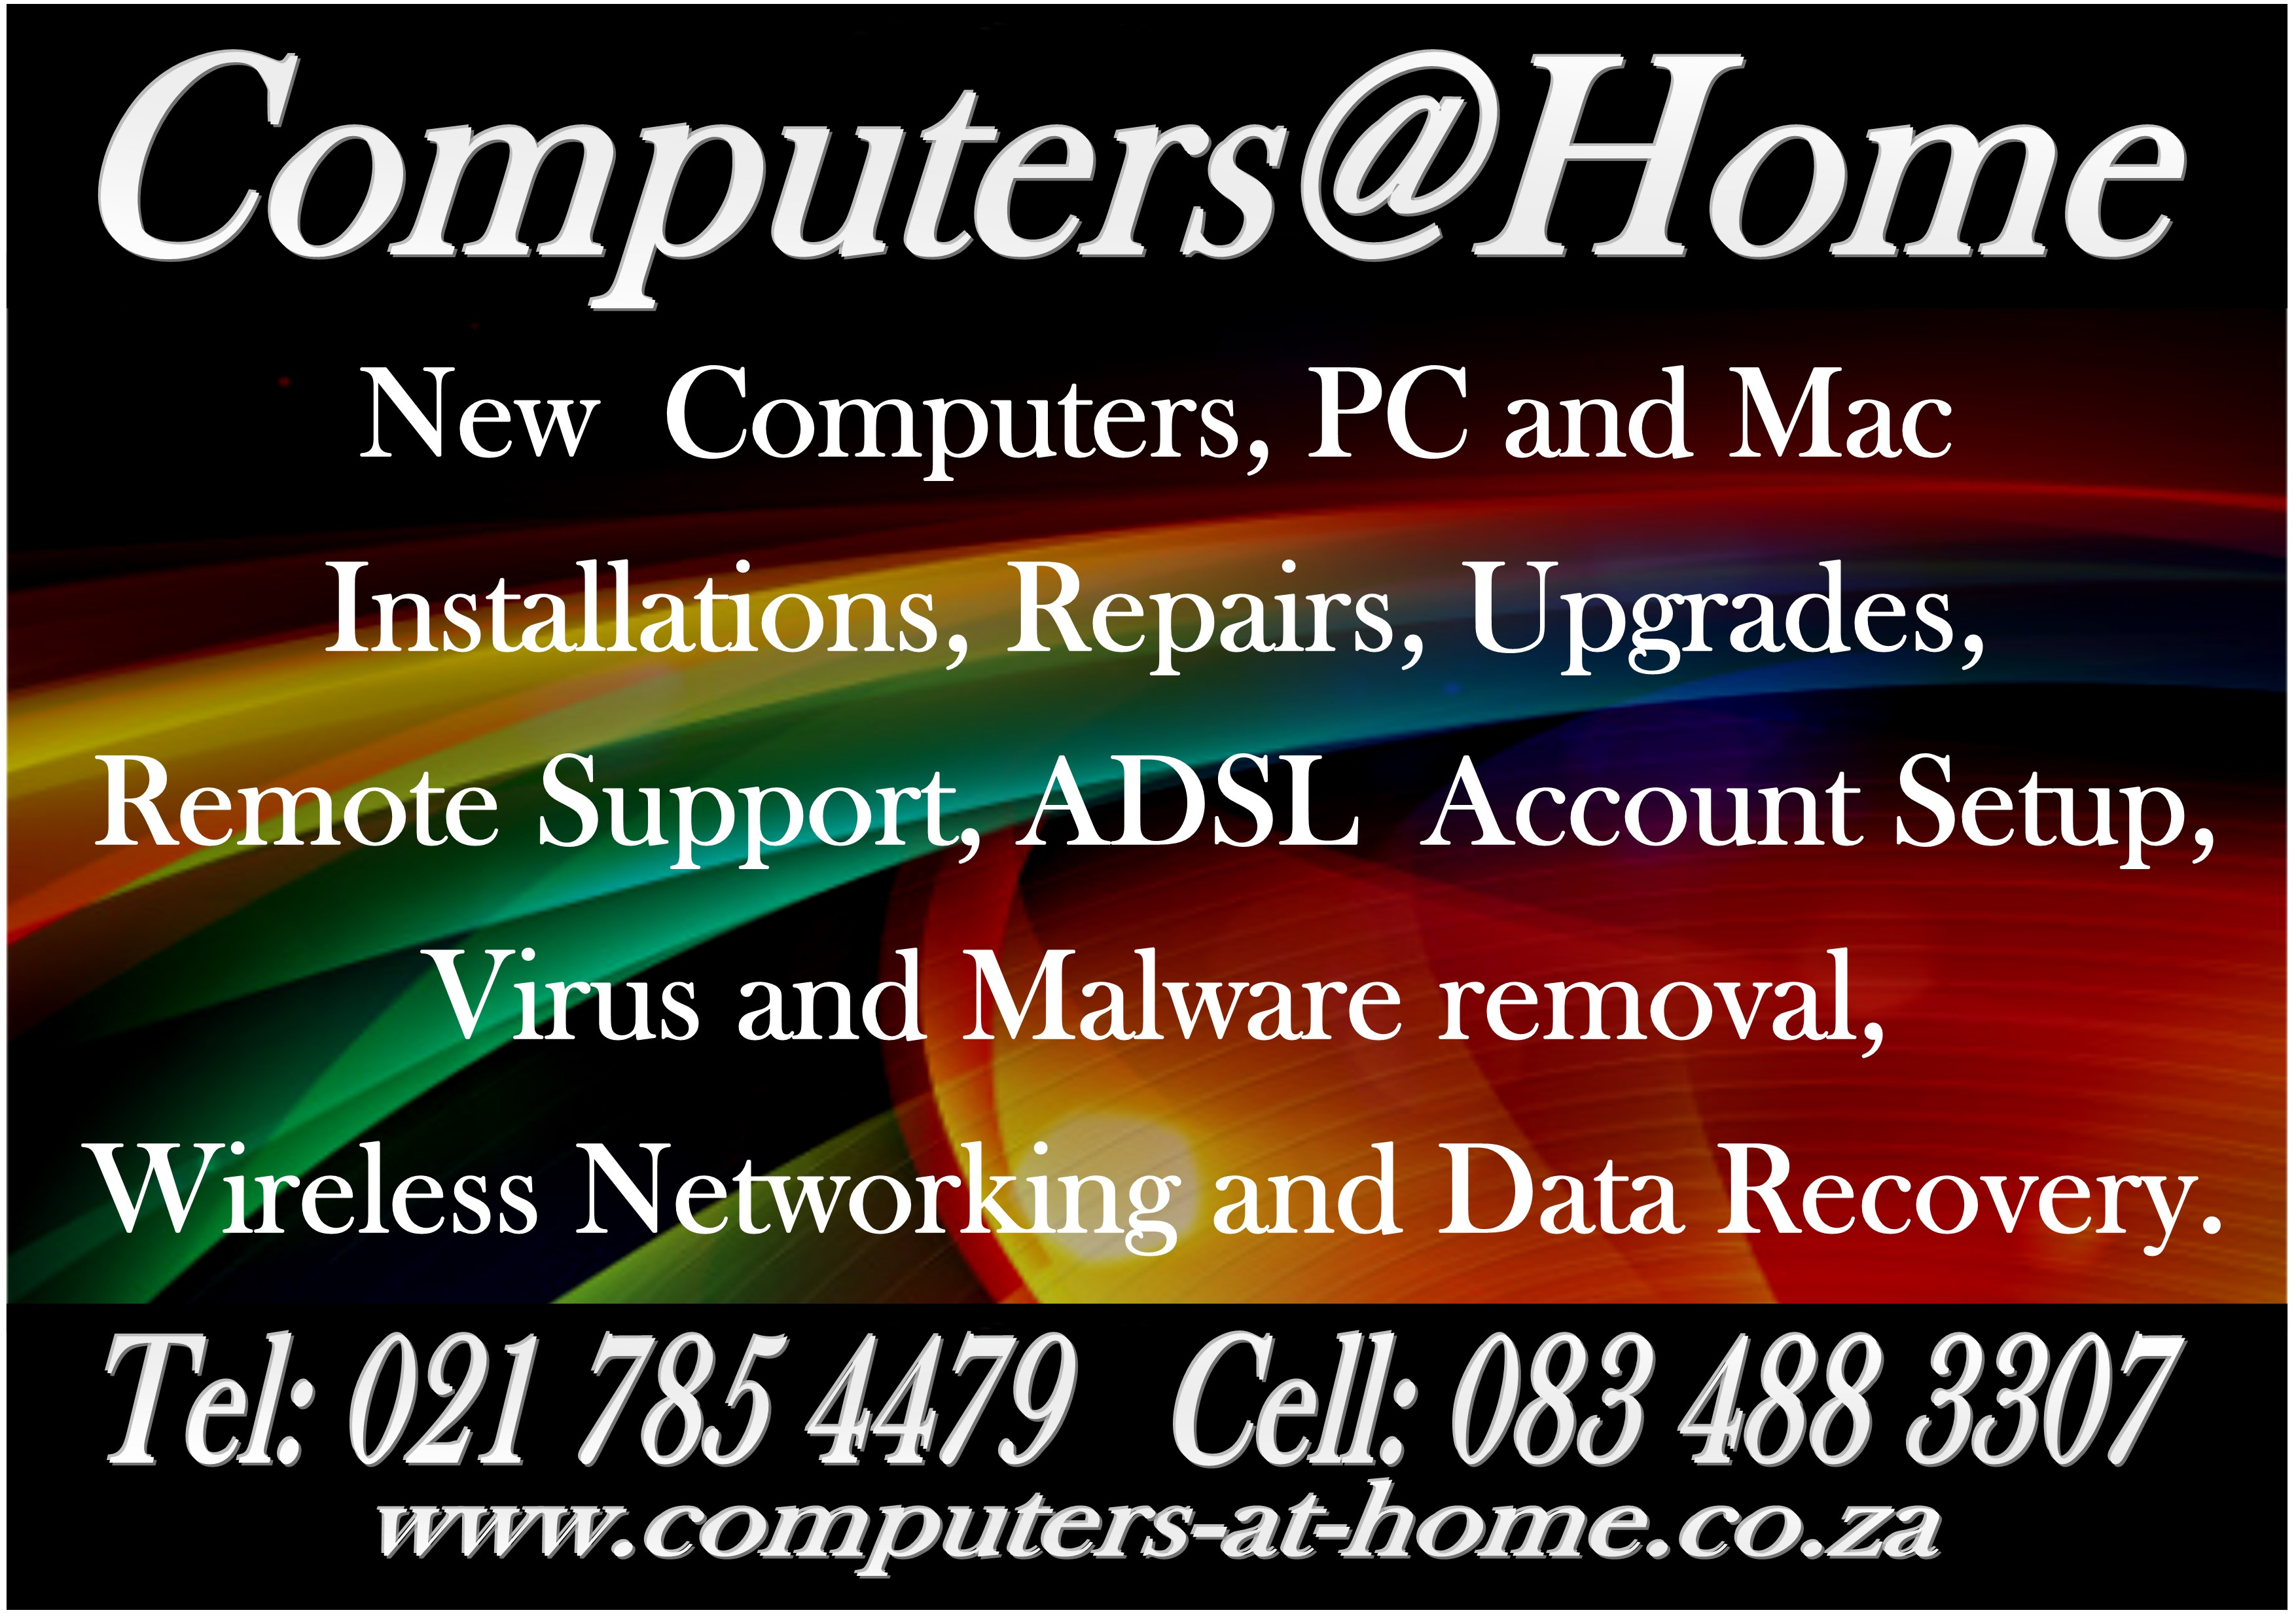 Computers @ Home